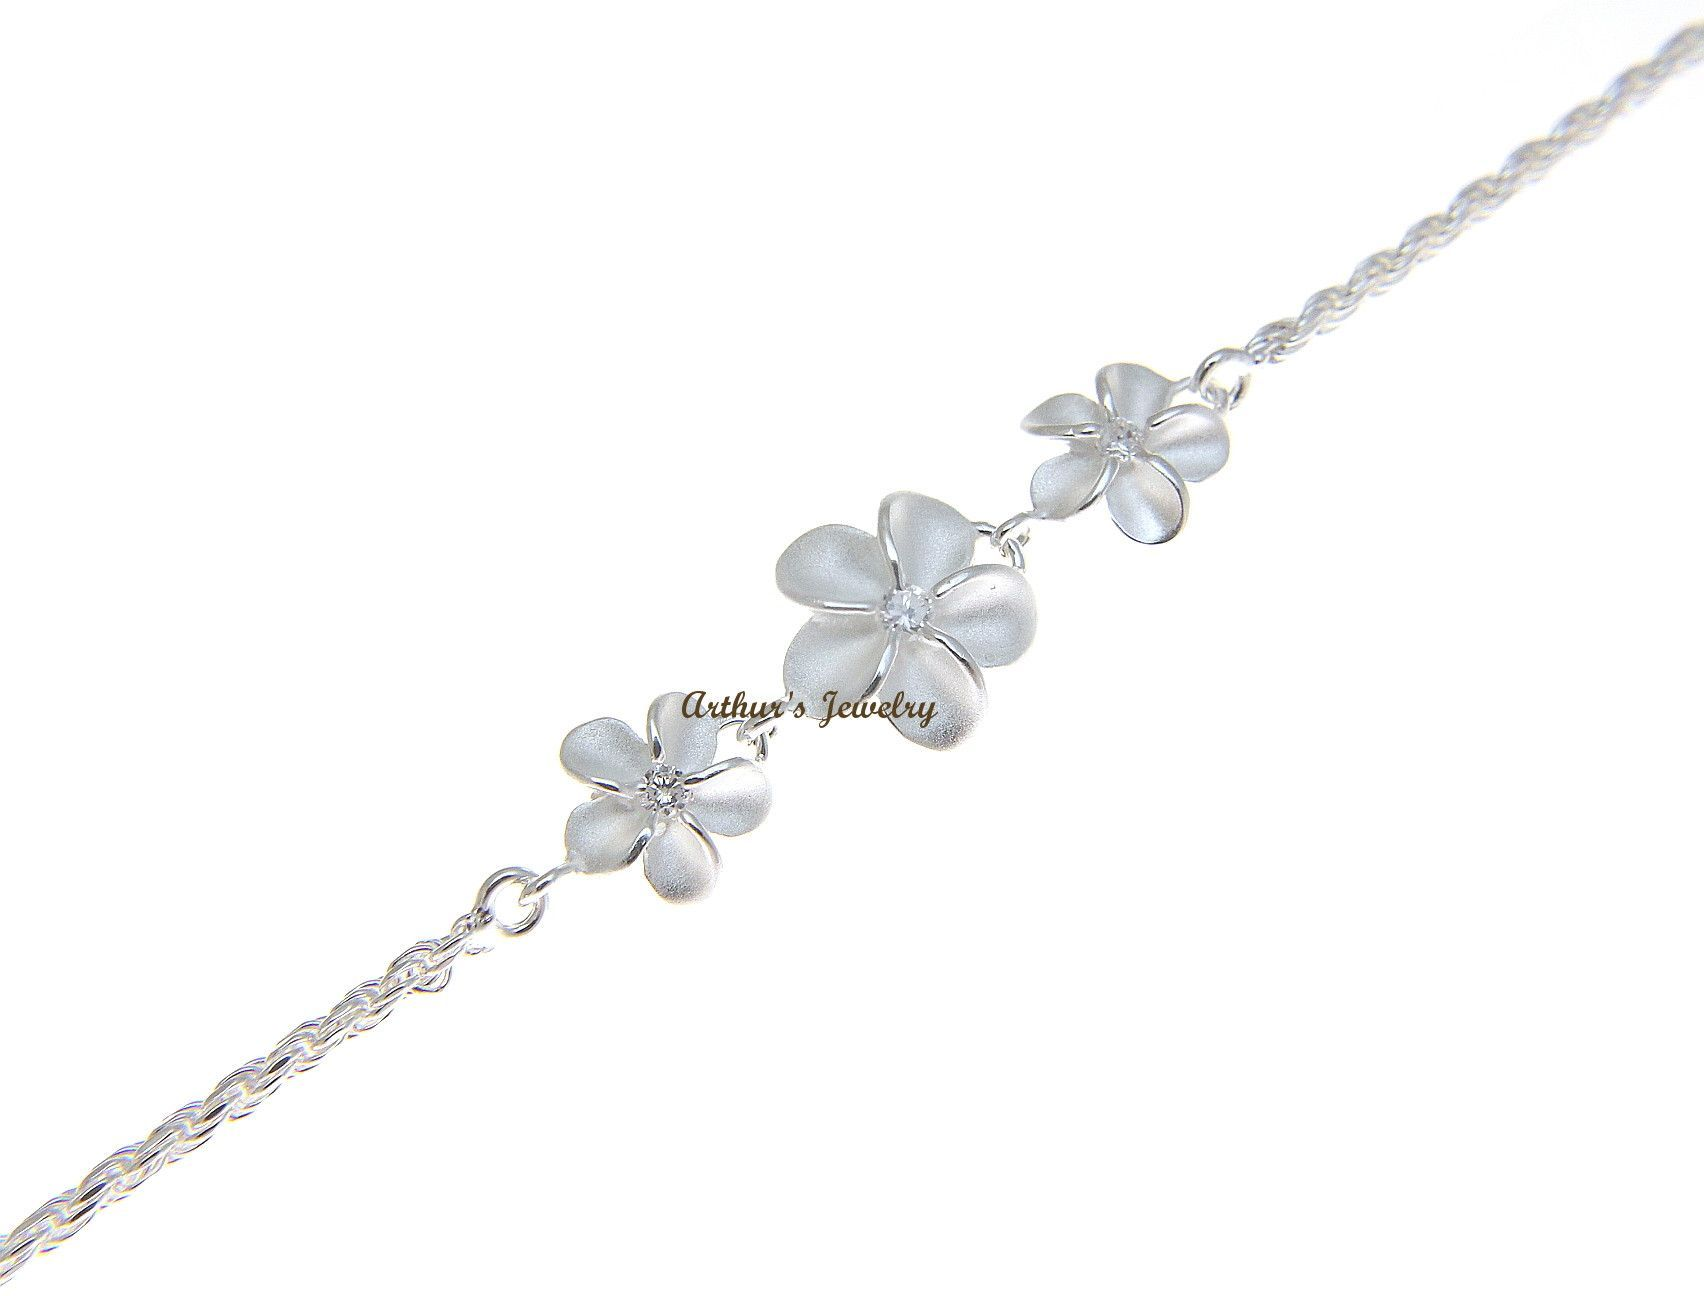 Silver 925 Hawaiian 8mm 10mm 8mm Plumeria Rope Chain Anklet Cz 10 925 Sterling Silver Jewelry Chain Anklet Sapphire Necklace Pendants